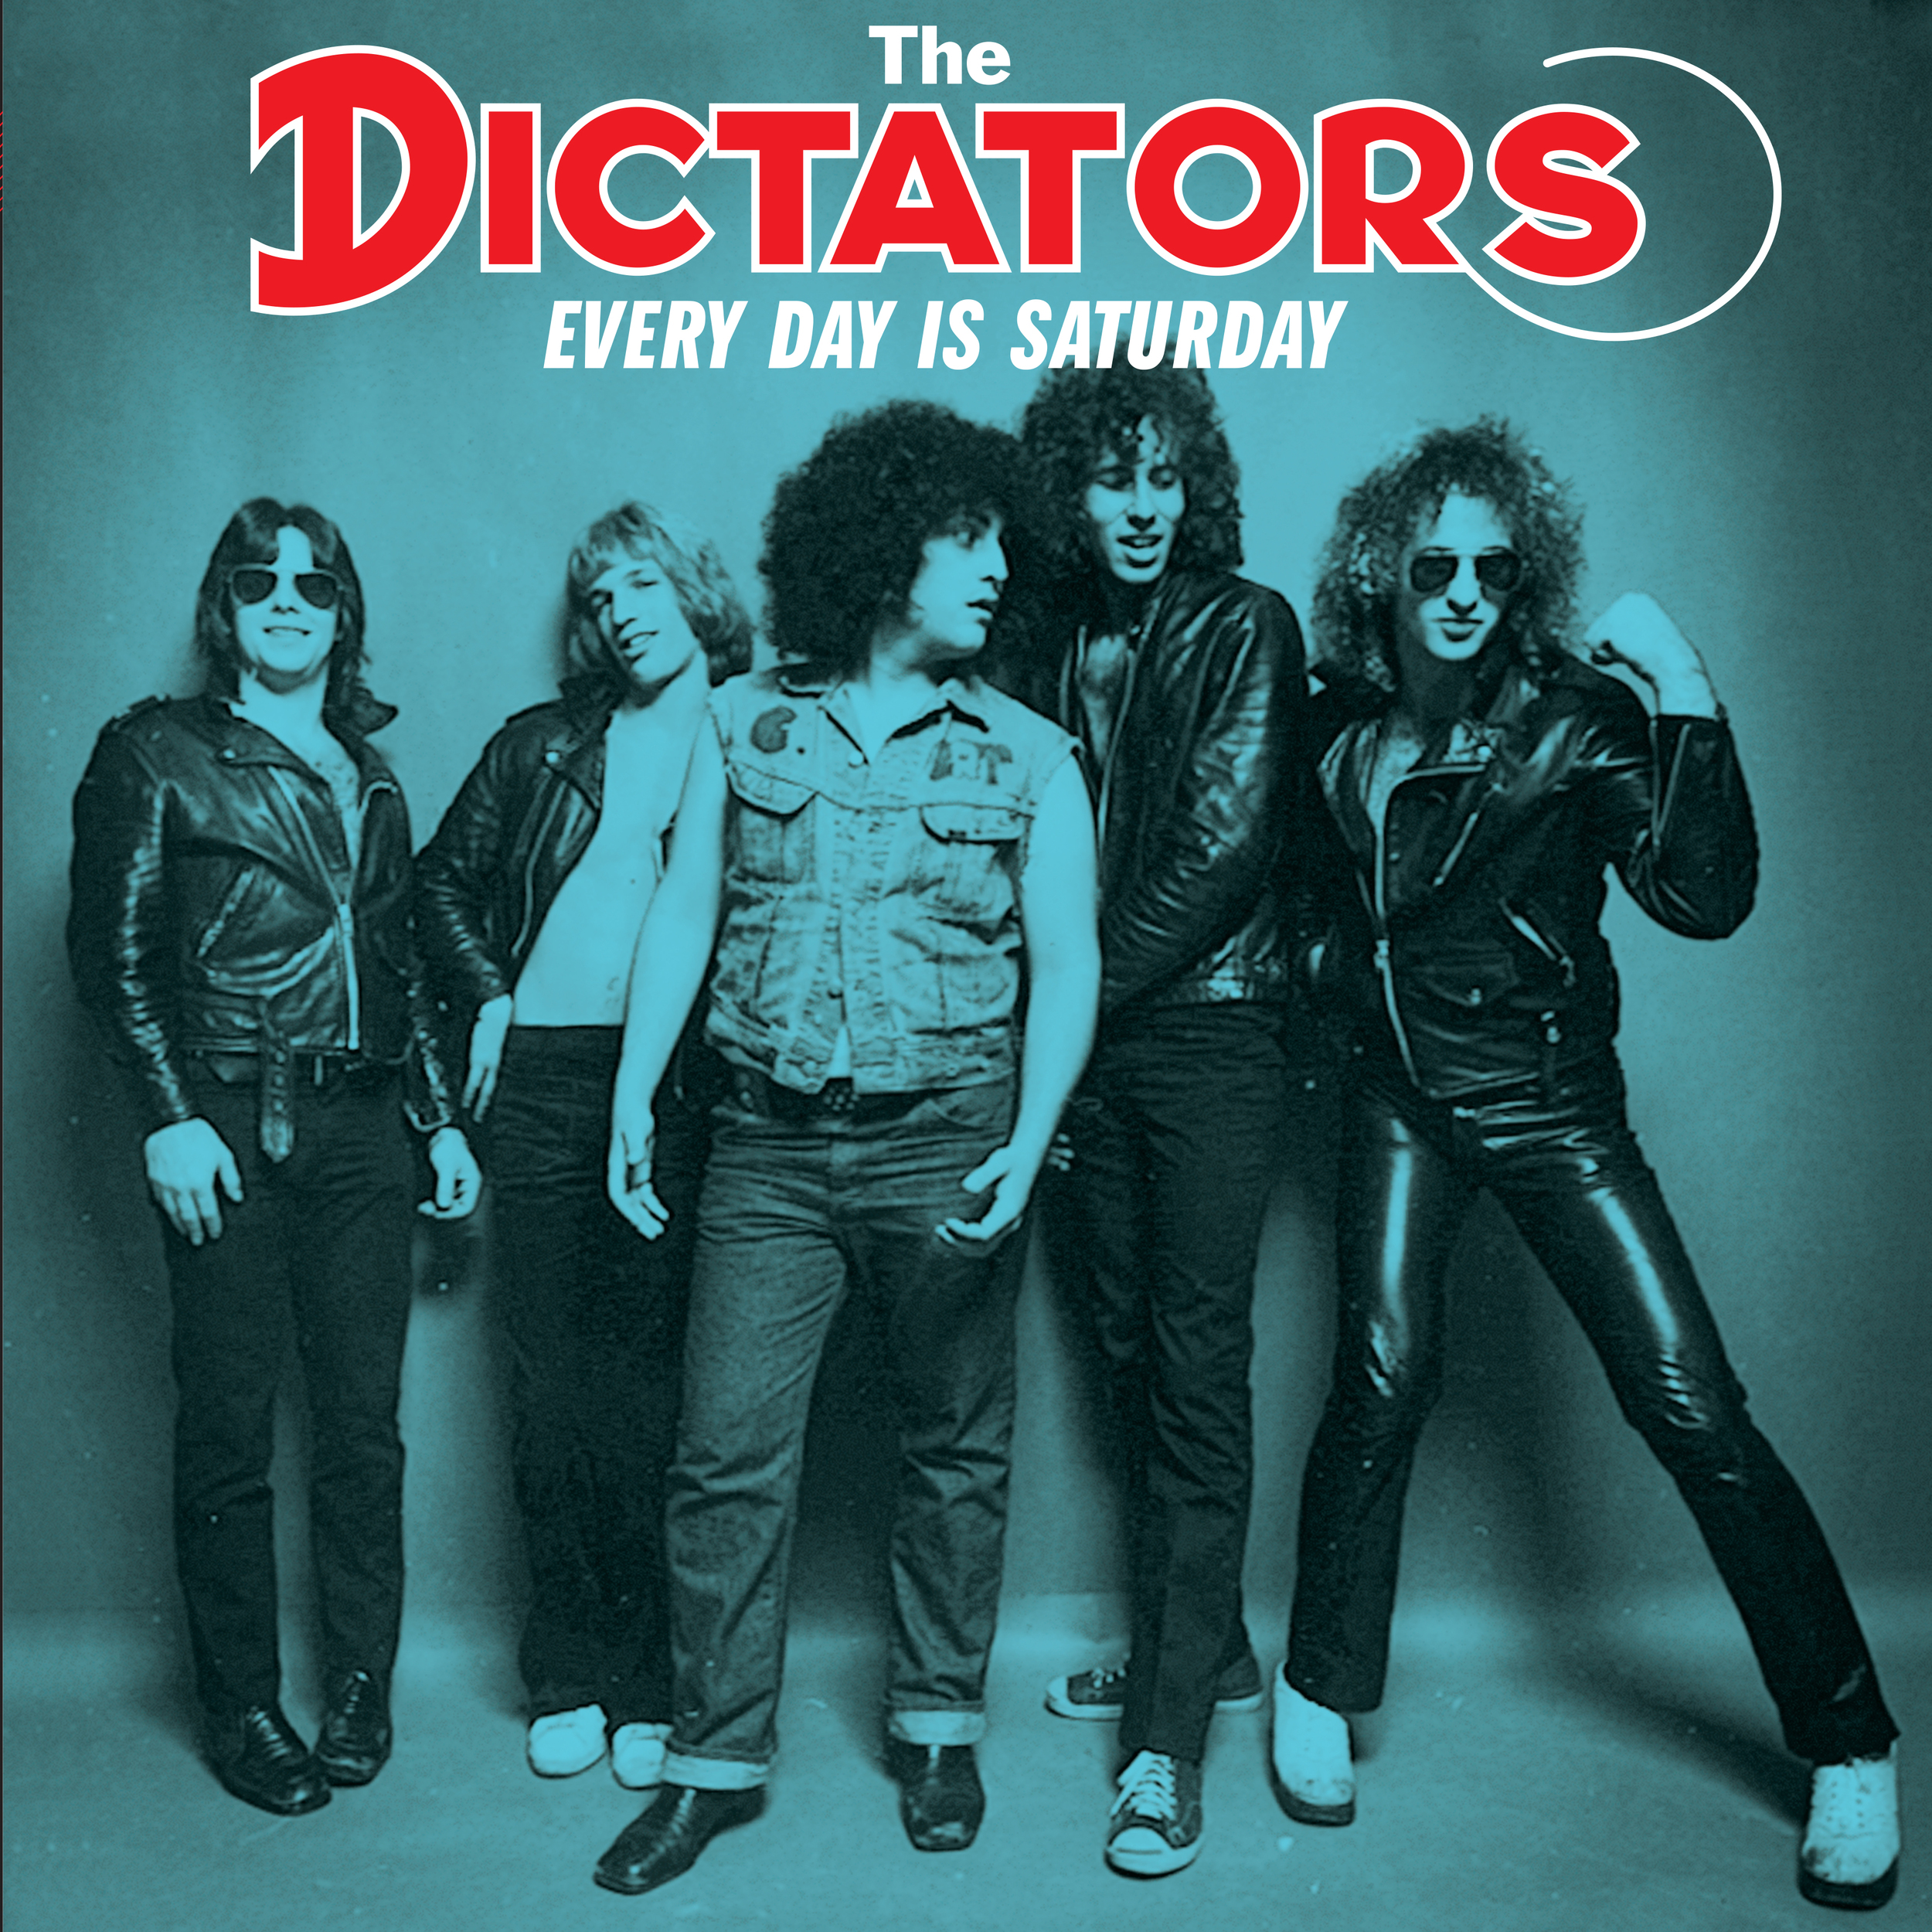 The Dictators - Every Day is Saturday LP/CD cover